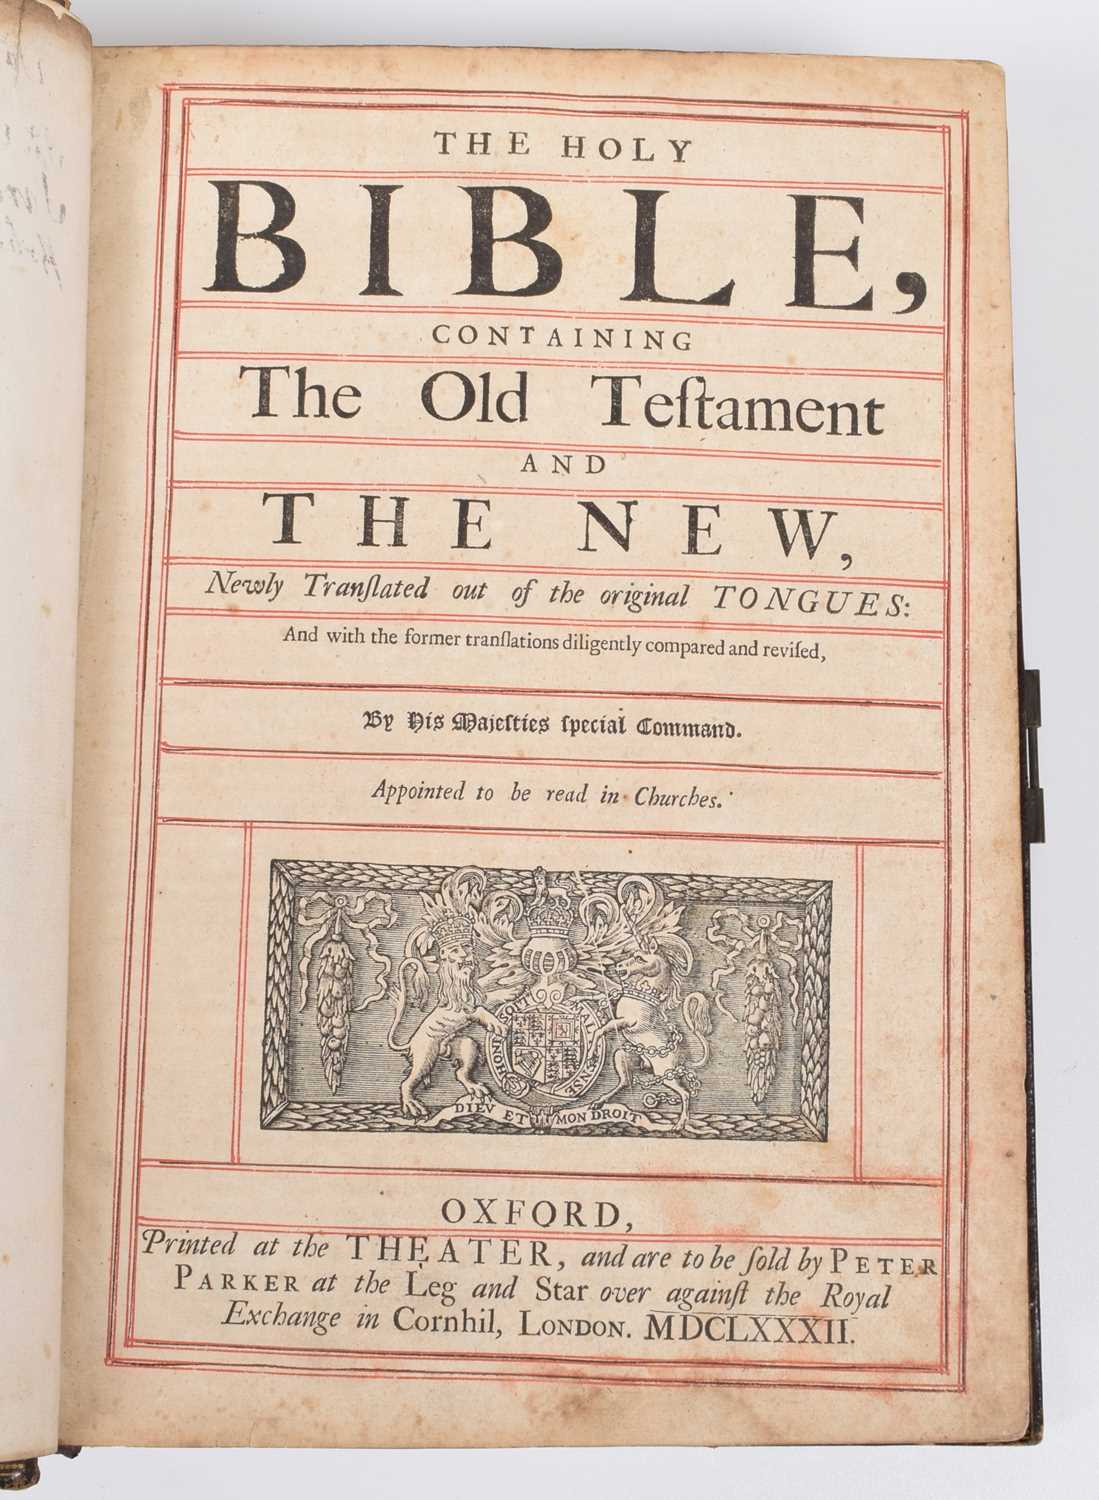 Lot 36-Holy Bible, King James Authorized Version, printed at the Theater, sold by Peter Parker, 1682.